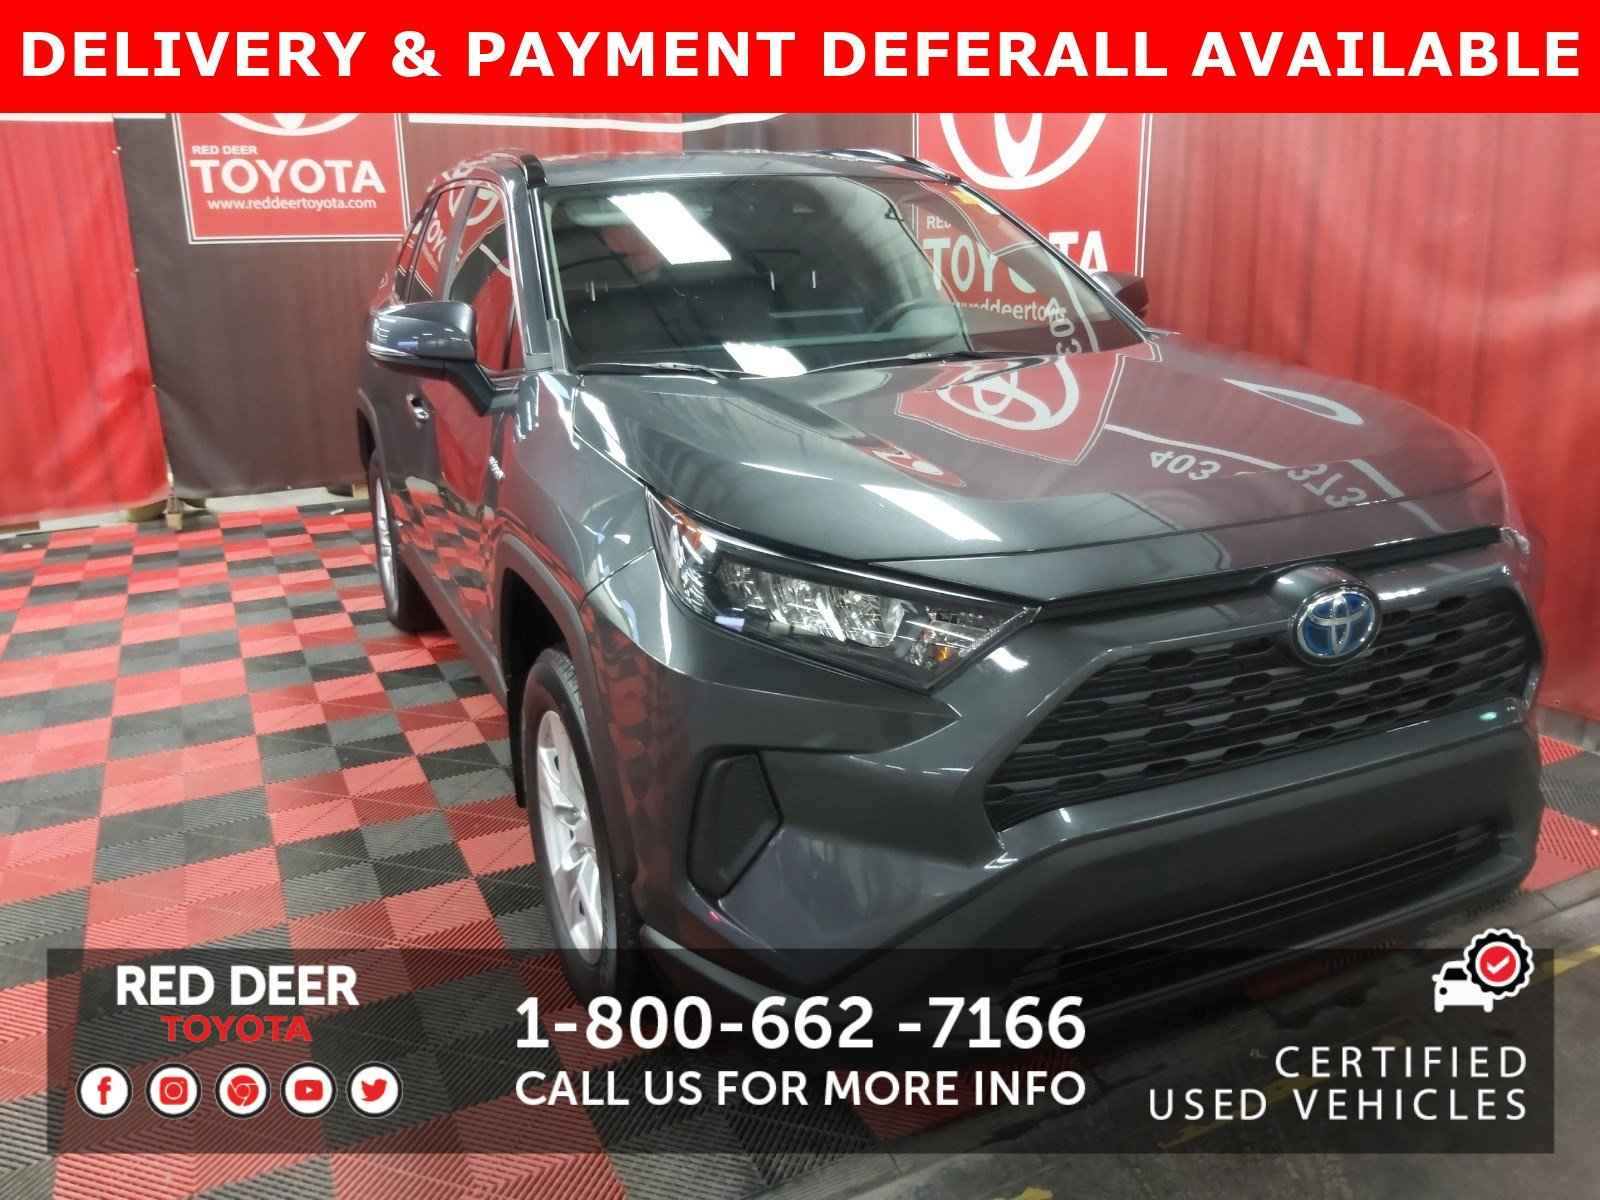 Certified Pre-Owned 2019 Toyota RAV4 Hybrid LE - SAVE THE GST!